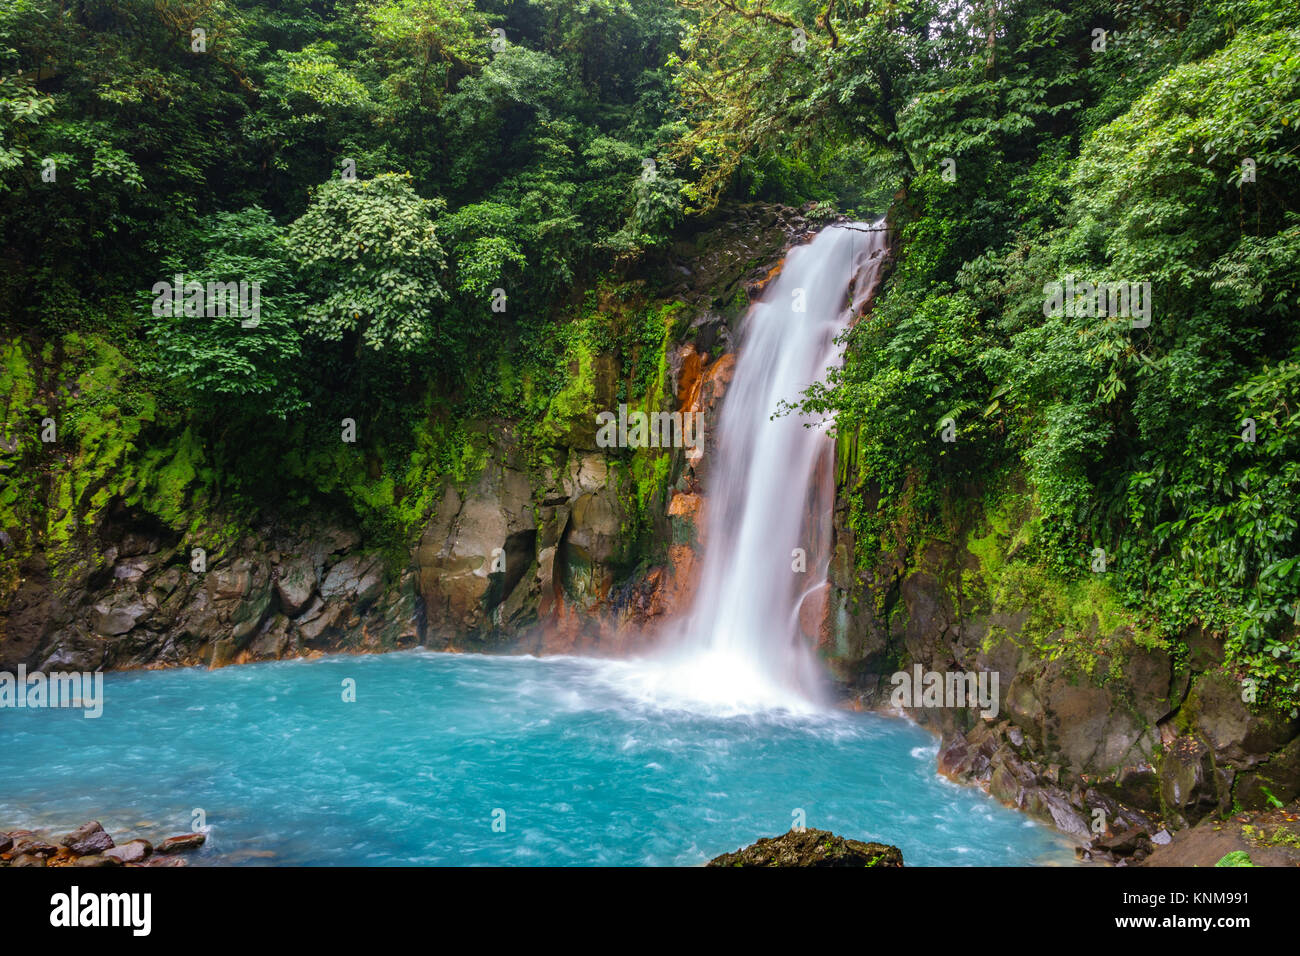 Celestial blue waterfall and pond in tenorio national park, Costa Rica - Stock Image